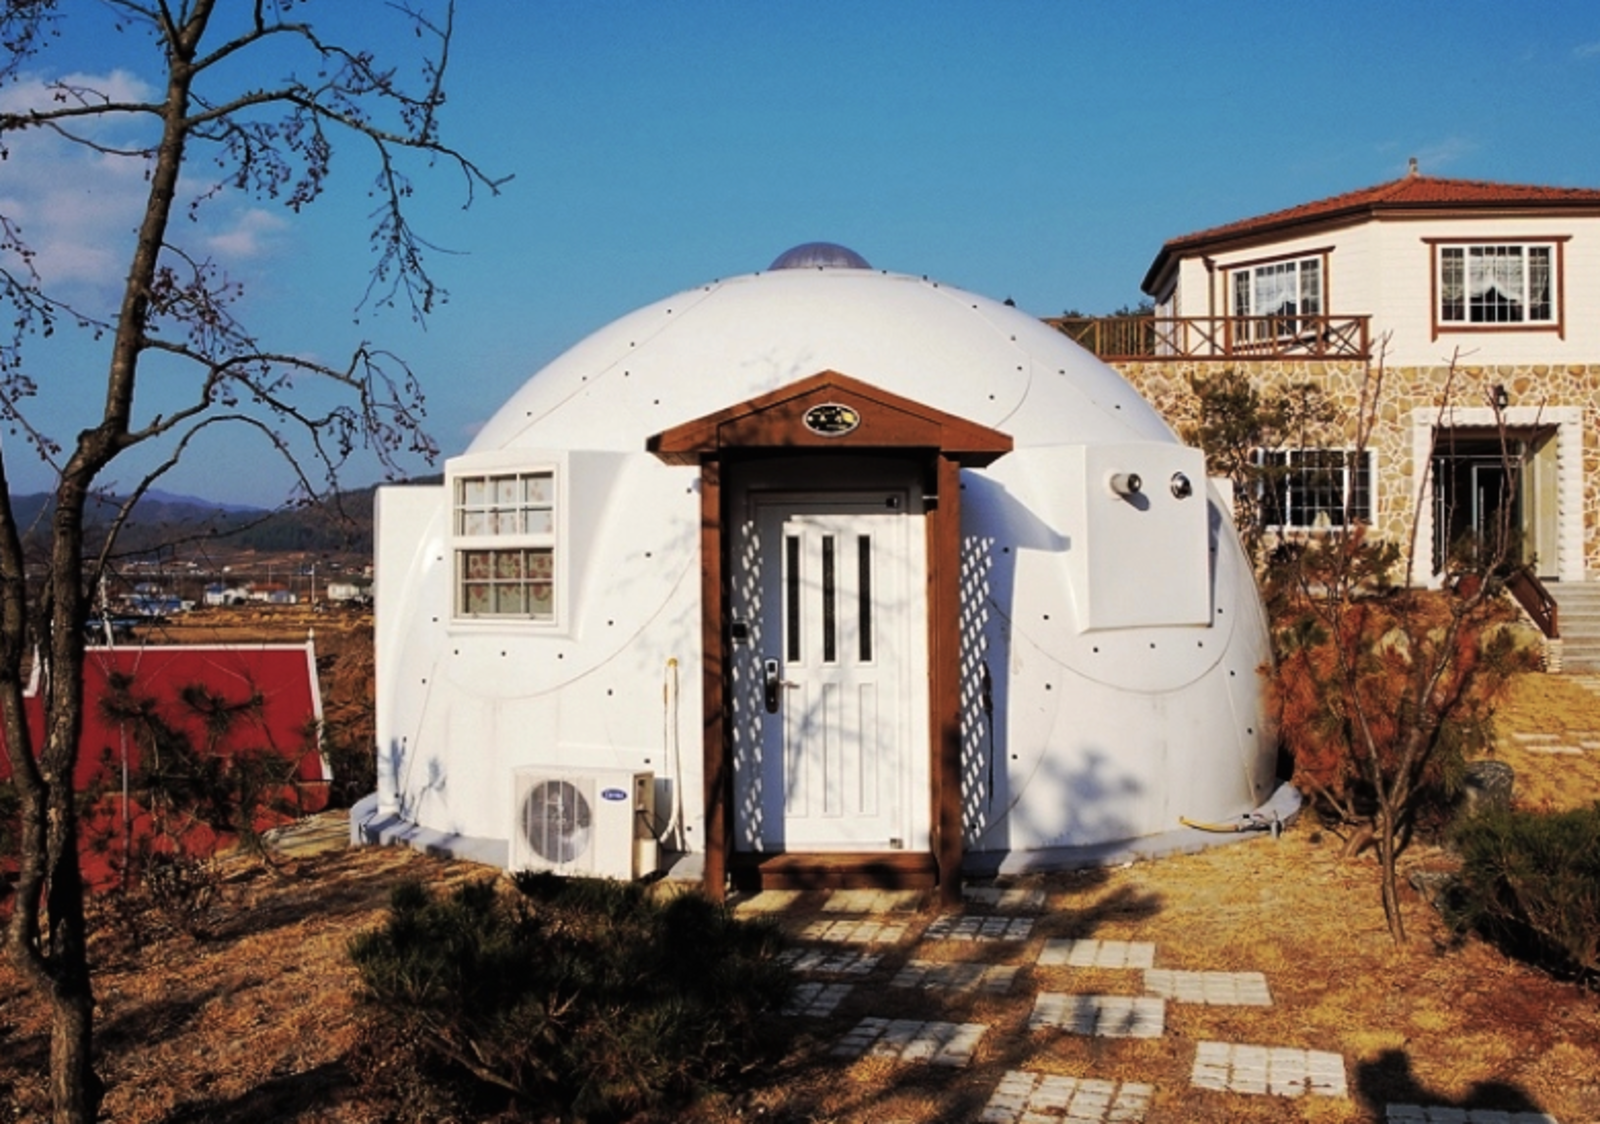 InterShelter dome prefab